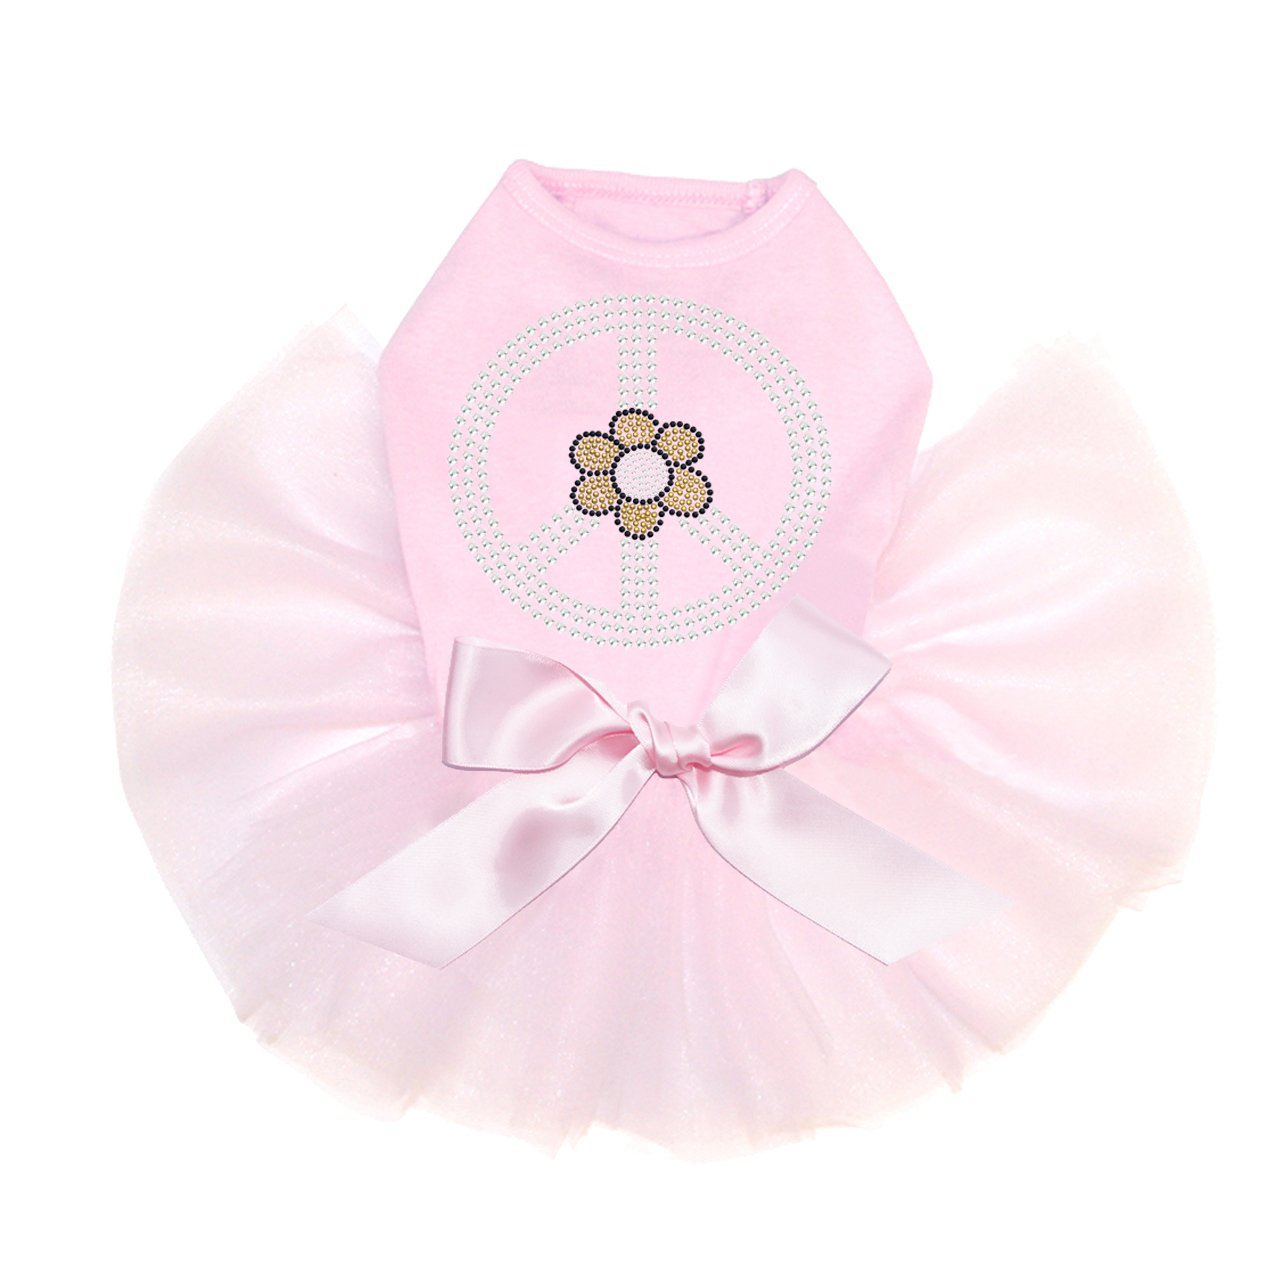 Peace Sign with Daisy - Bling Rhinestone Dog Tutu Dress, 3XL Pink